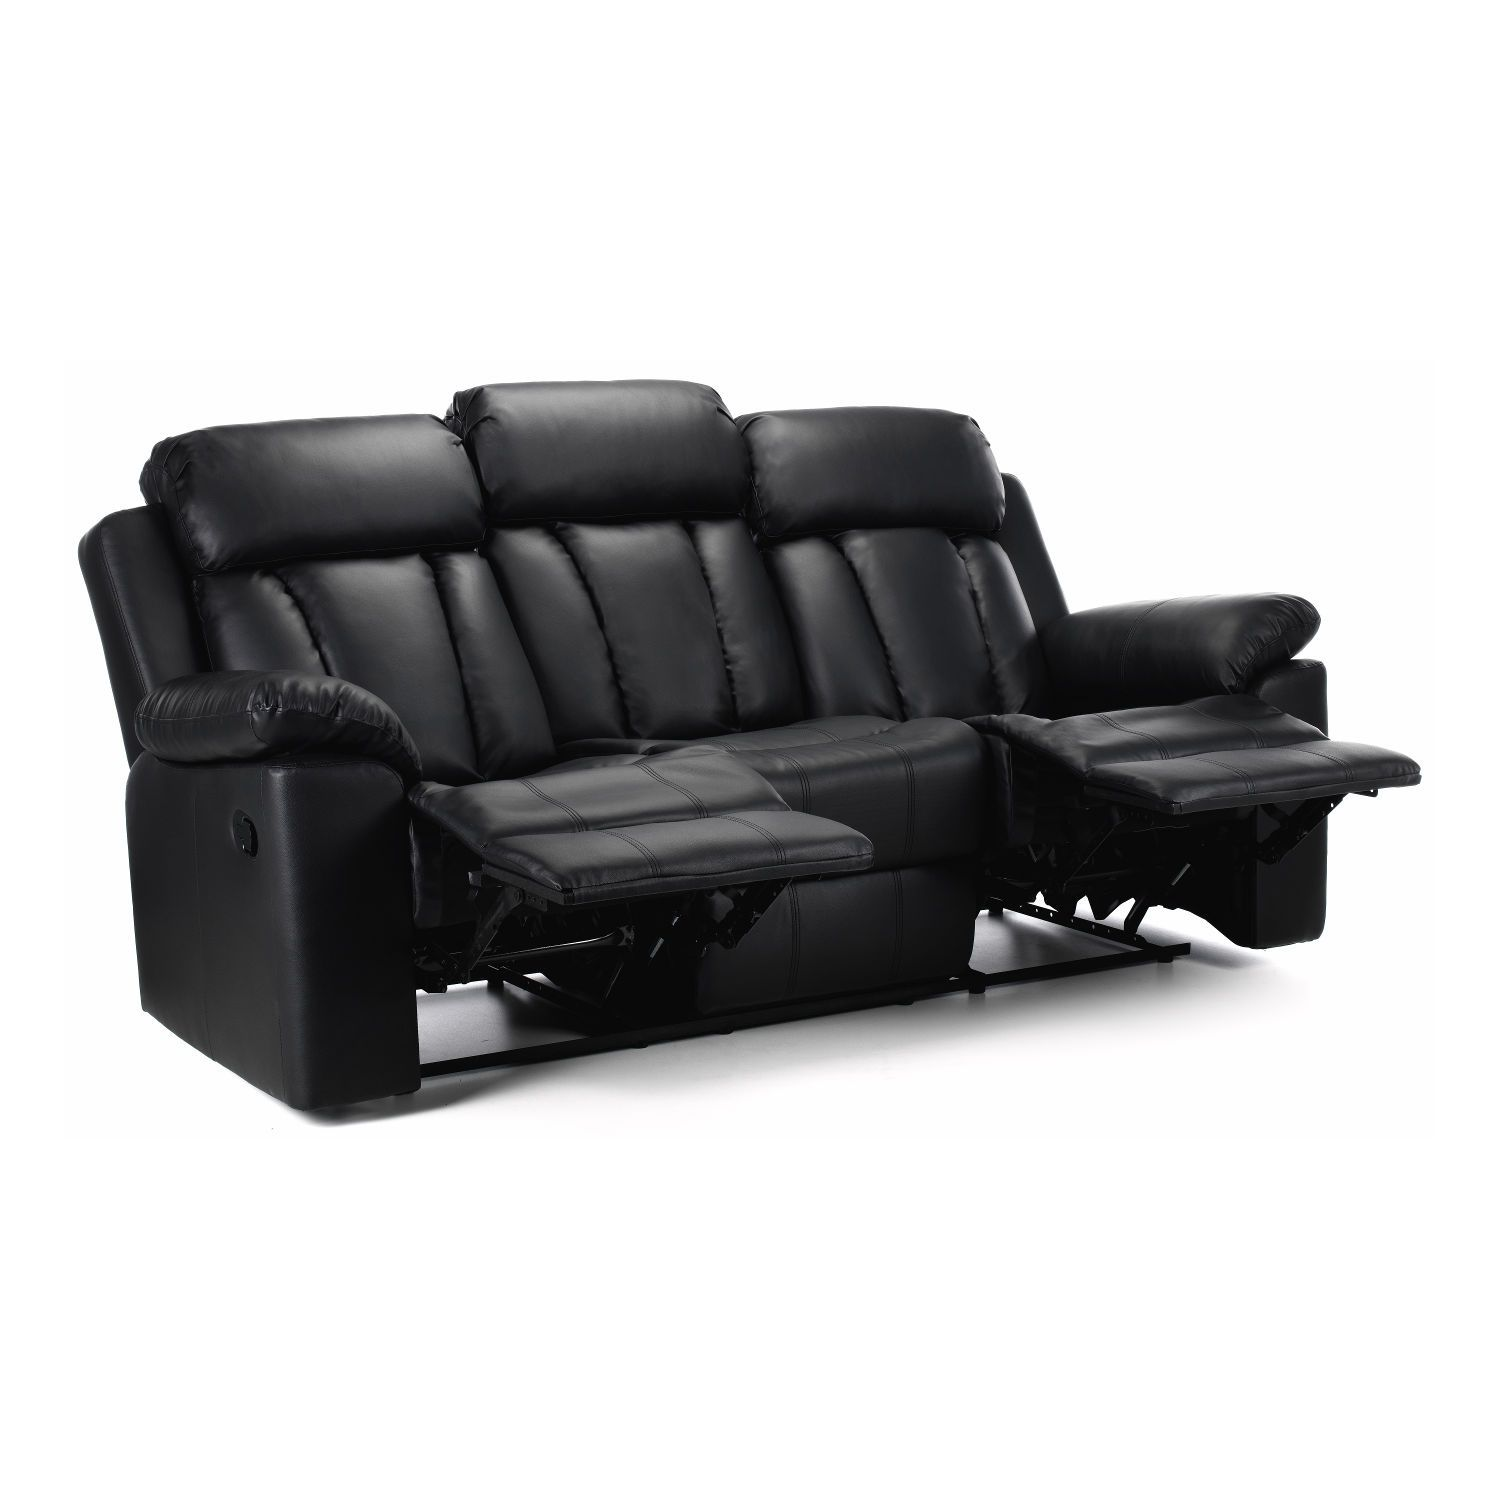 Merveilleux Cranbrook 3 Seater Leather Reclining Sofa U2013 Next Day Delivery Cranbrook 3  Seater Leather Reclining Sofa